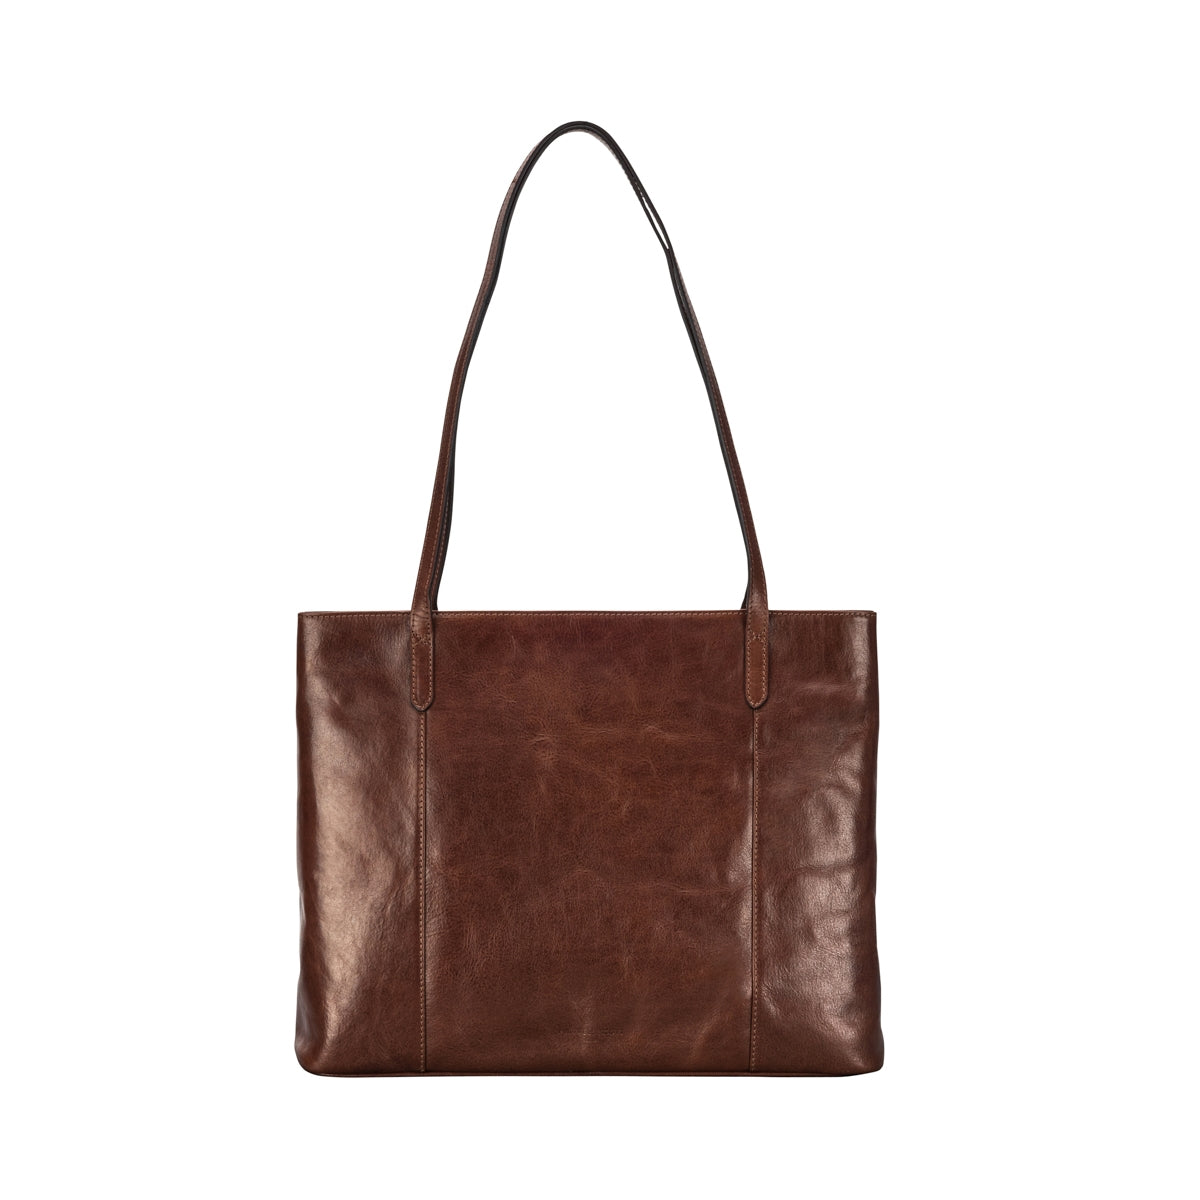 Image 4 of the 'Athenea' Chestnut Veg-Tanned Leather Shopper